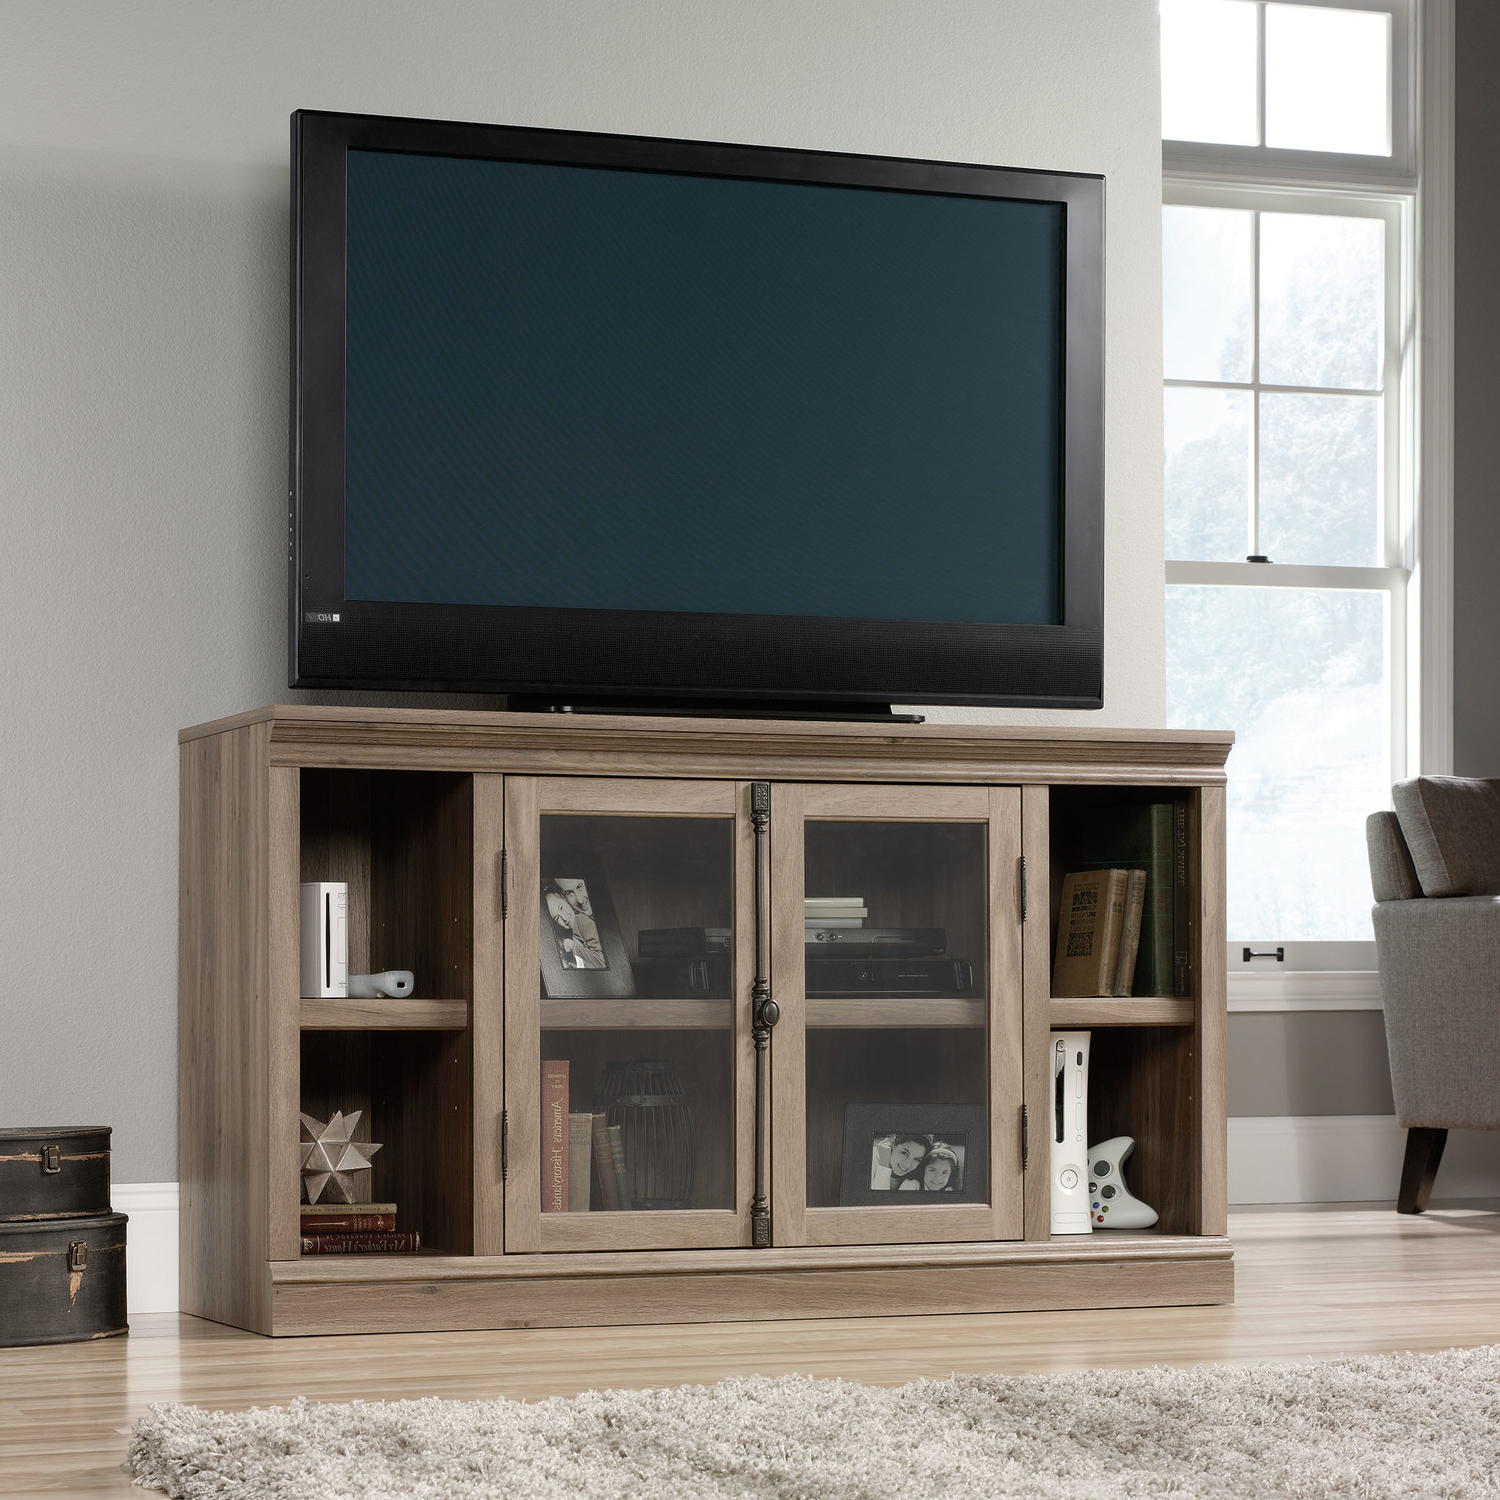 Well Liked Simple Design Rustic Tv Stand — Home Decorcoppercreekgroup With Rustic Tv Stands (View 19 of 20)